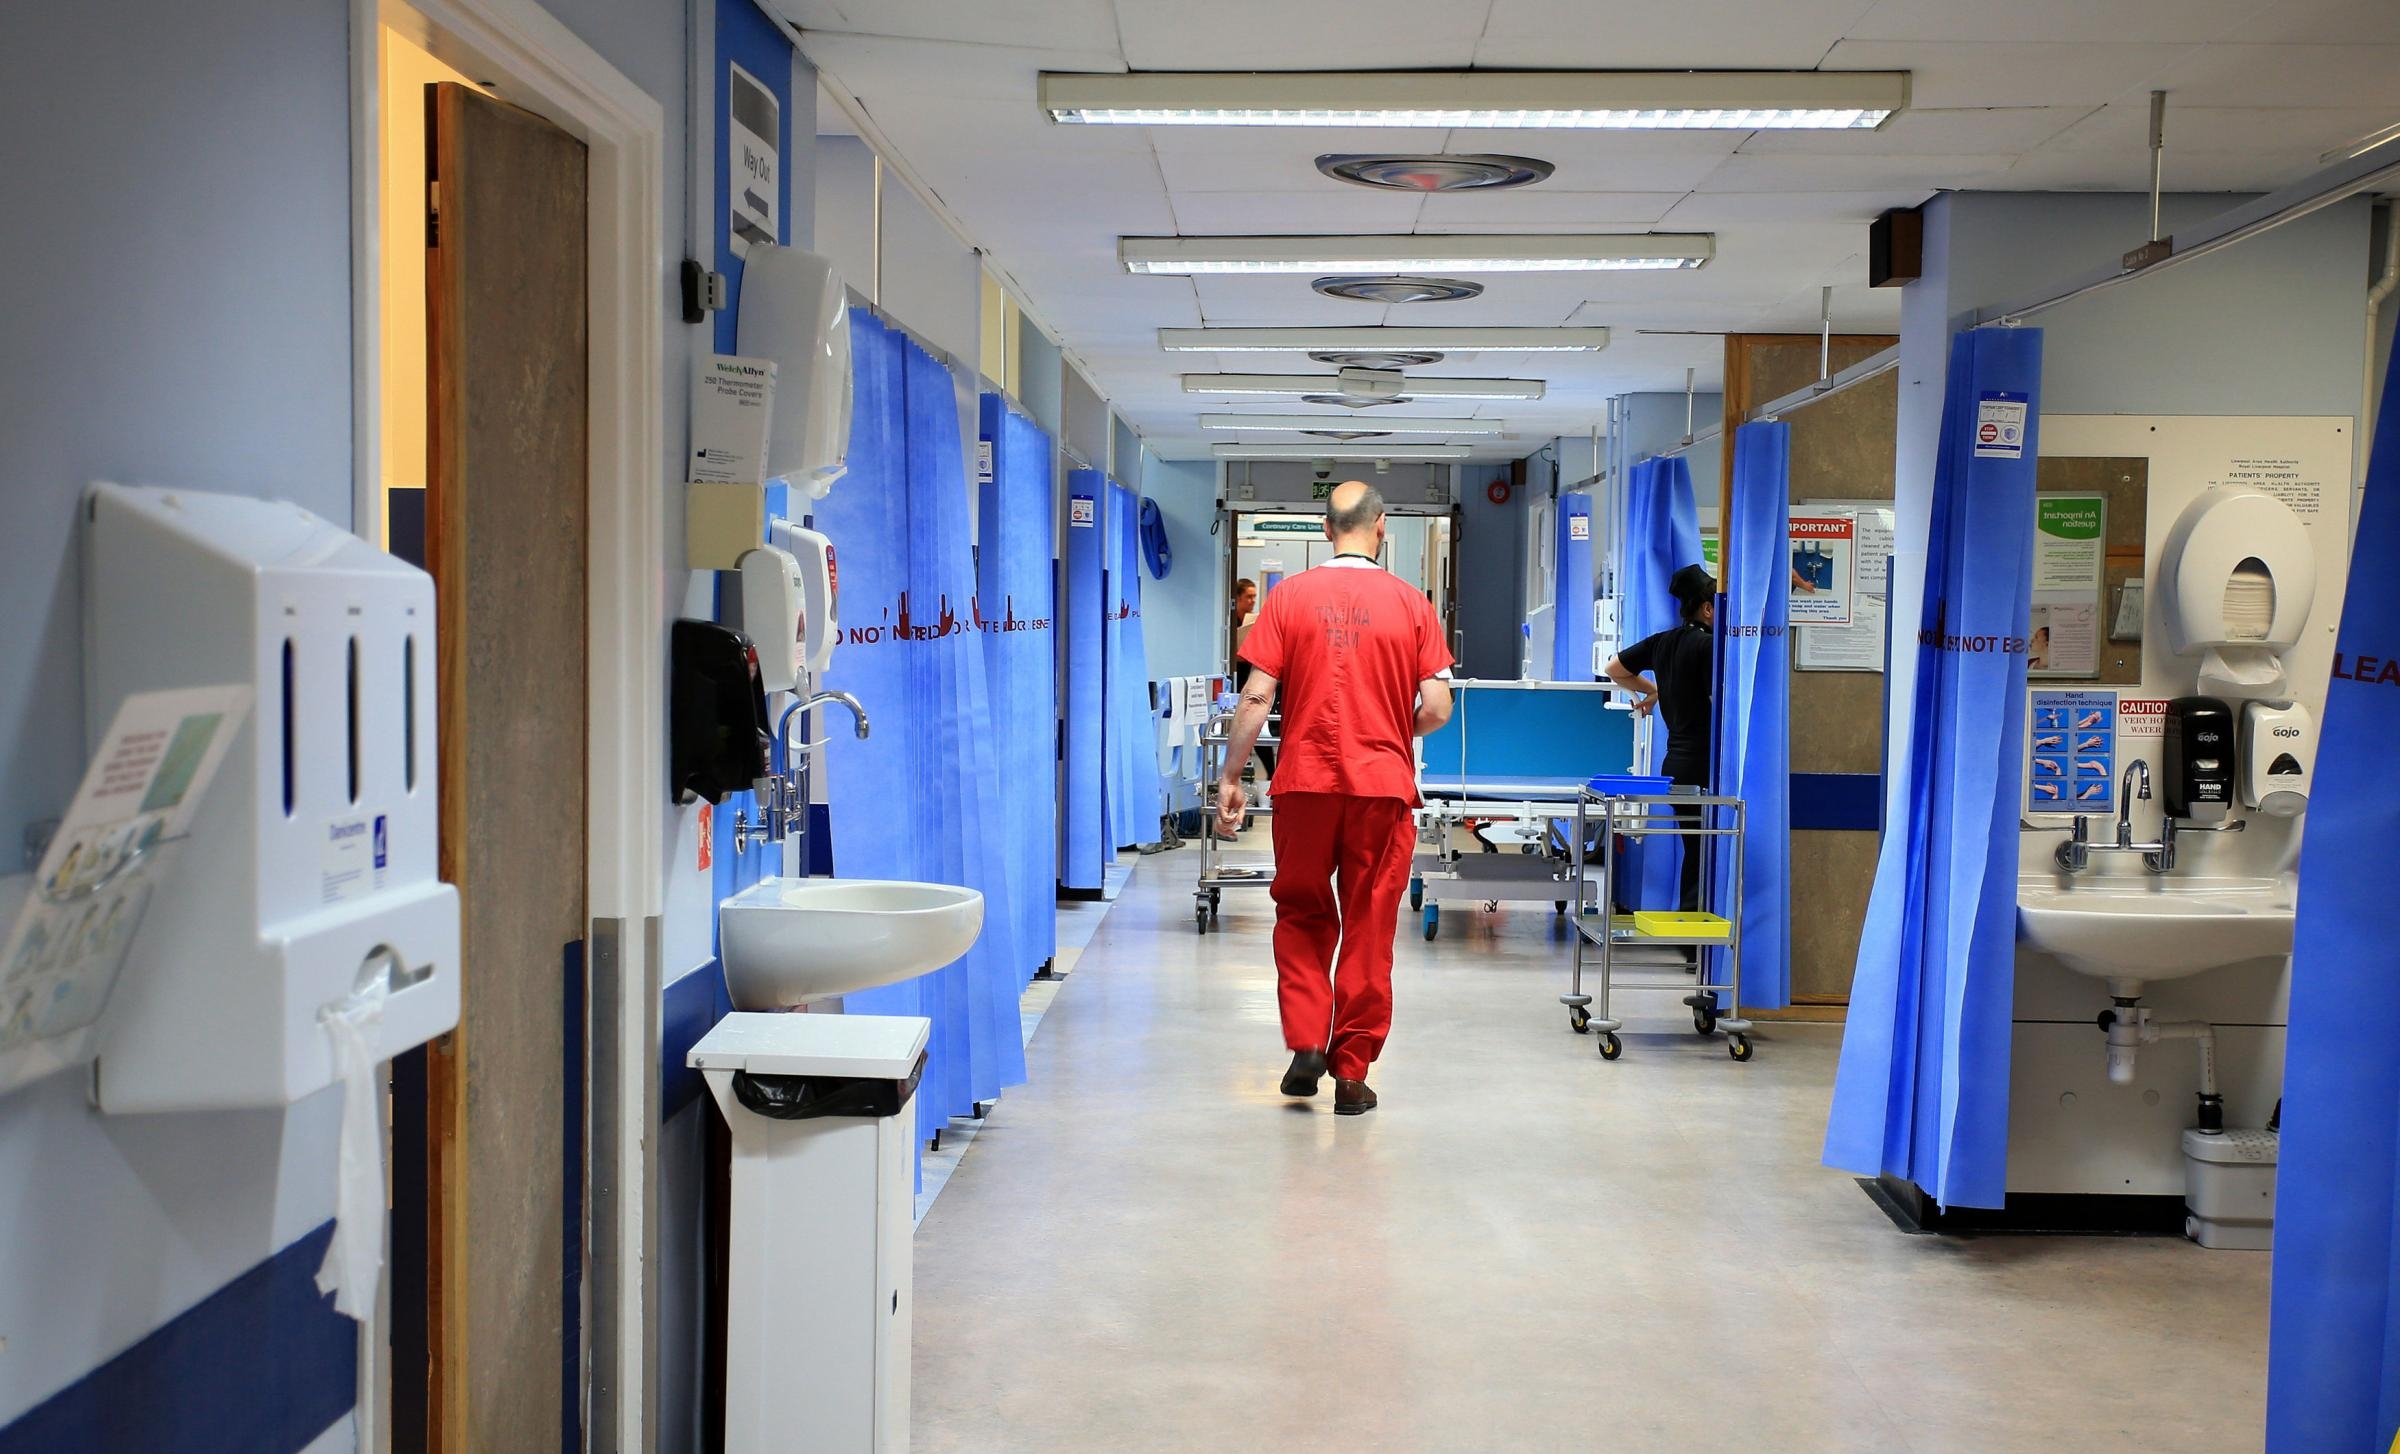 CHANGES: The NHS is planning to ditch the four-hour A&E waiting times target and replace it with a raft of new measures